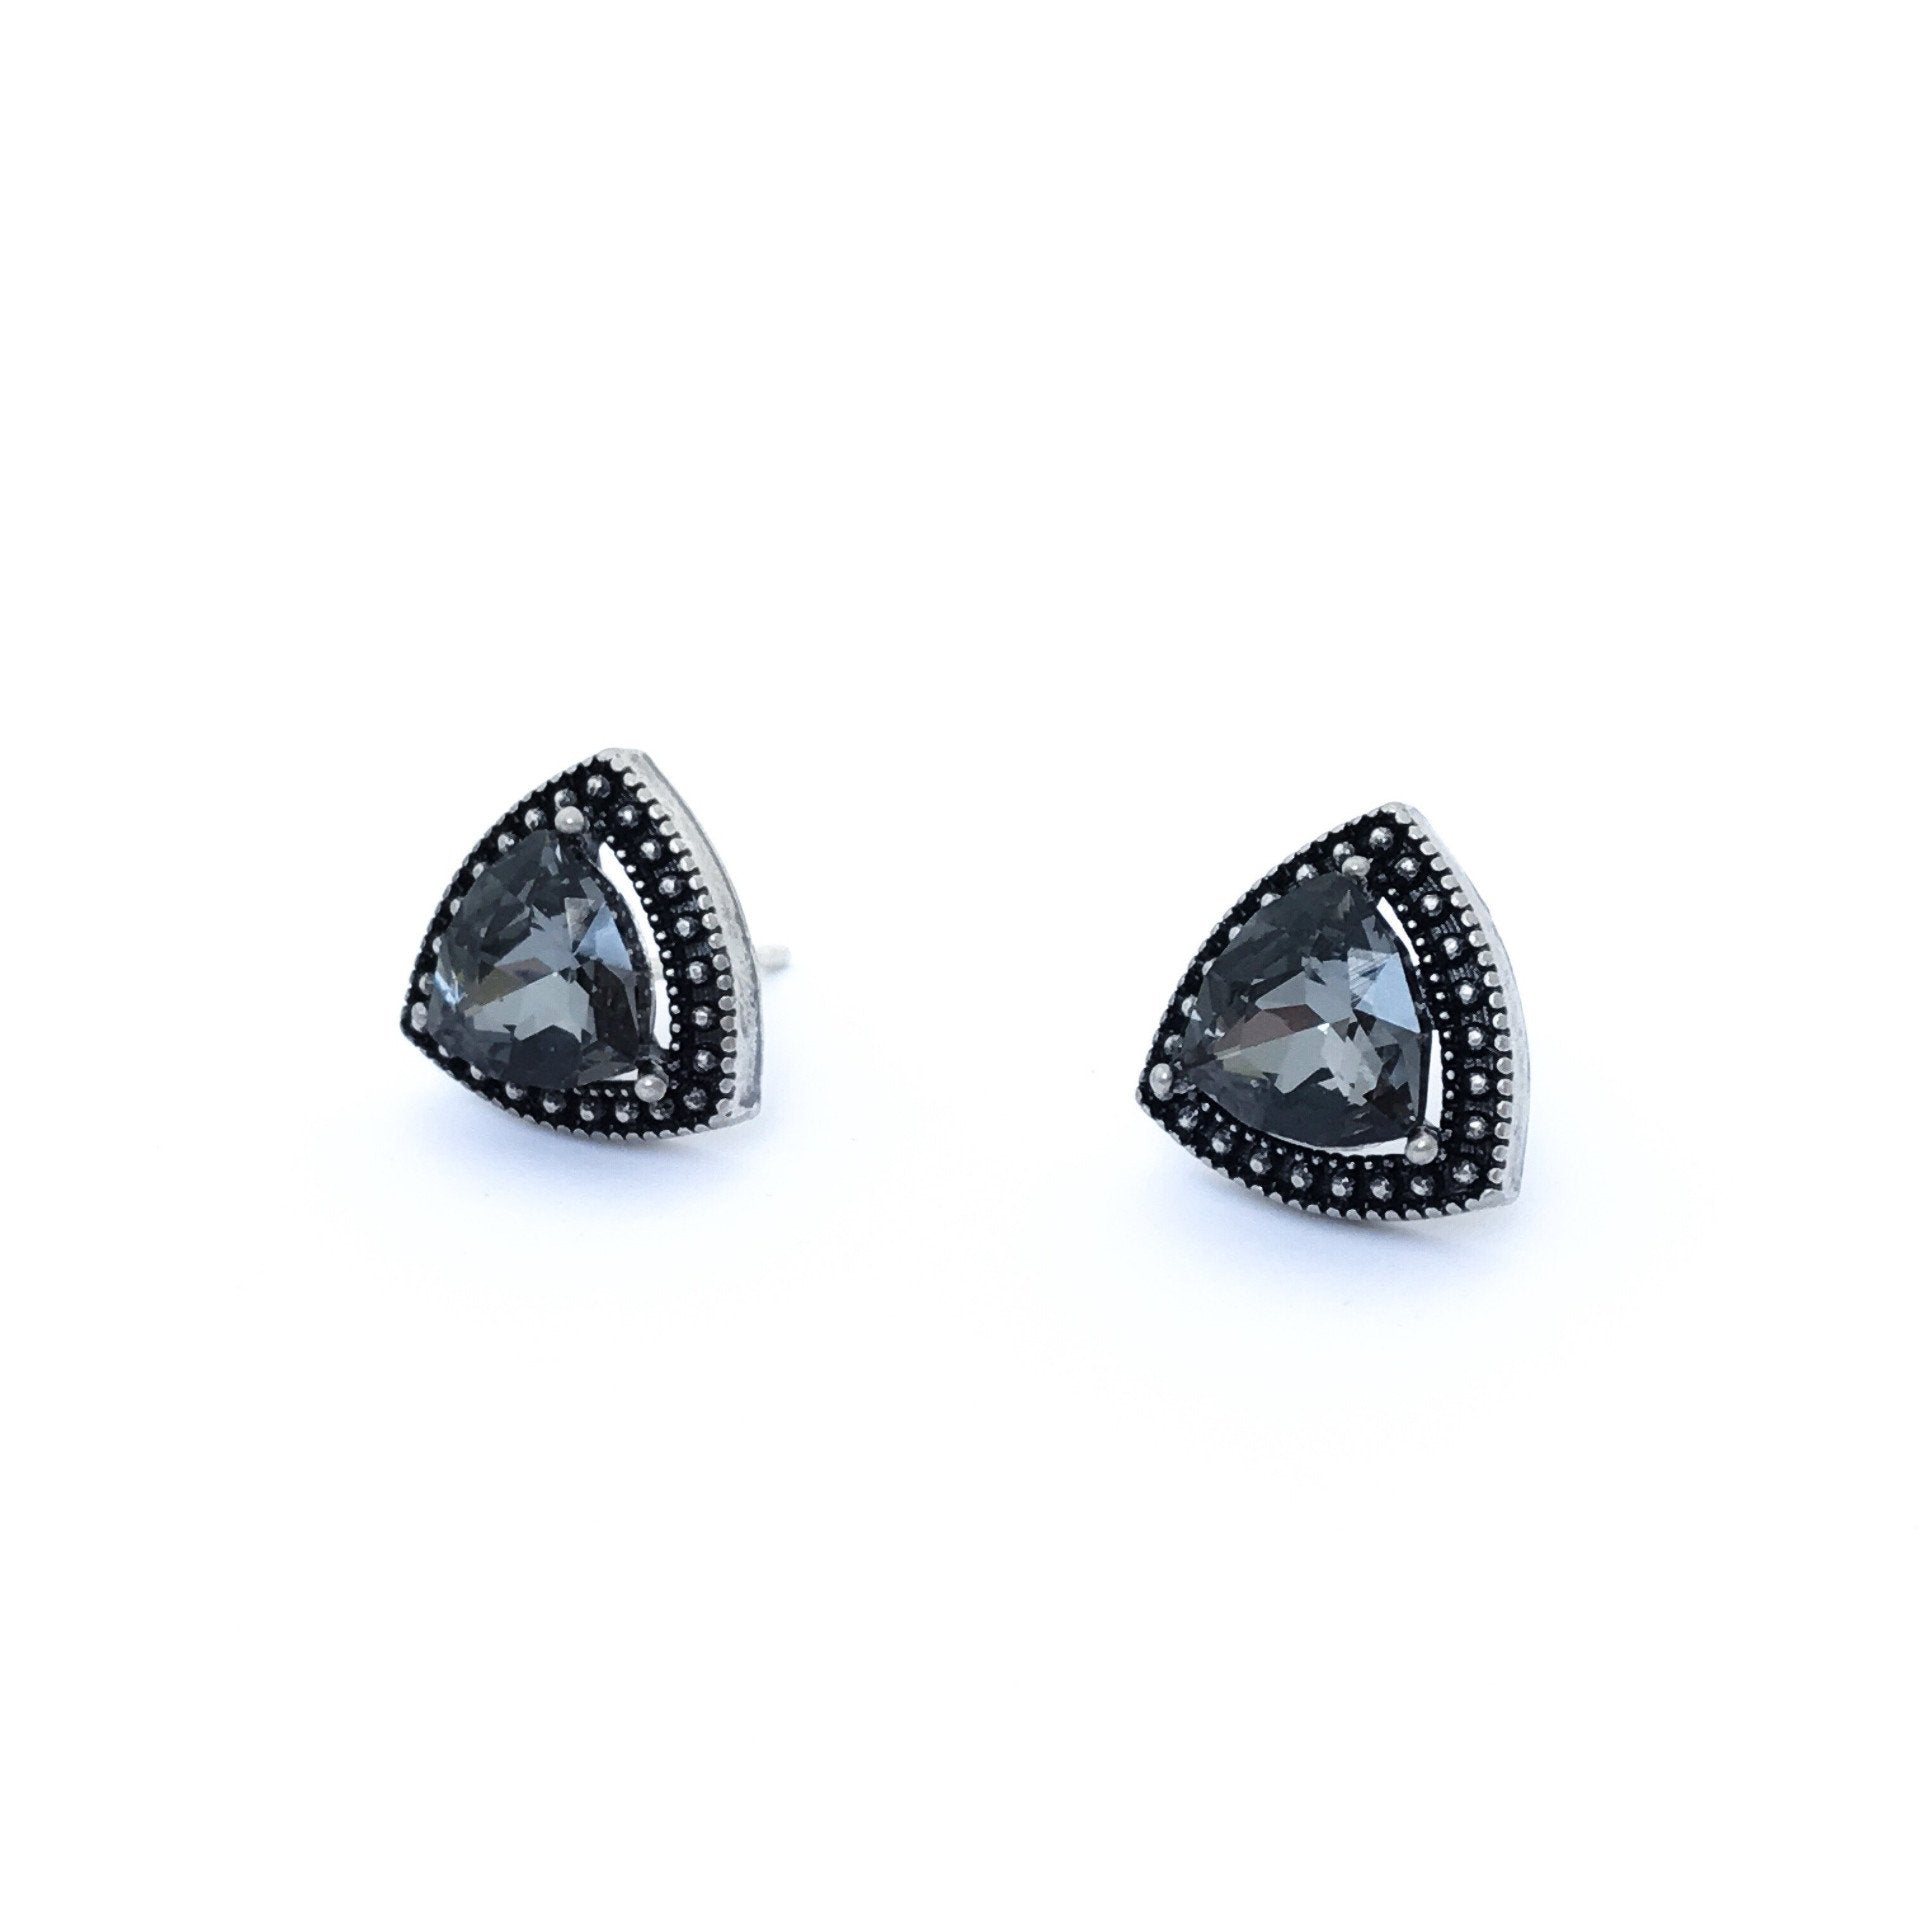 pink pushbacks gold stud uk and shop earrings products overlay online crystal elements swarovski spo topaz black onyx